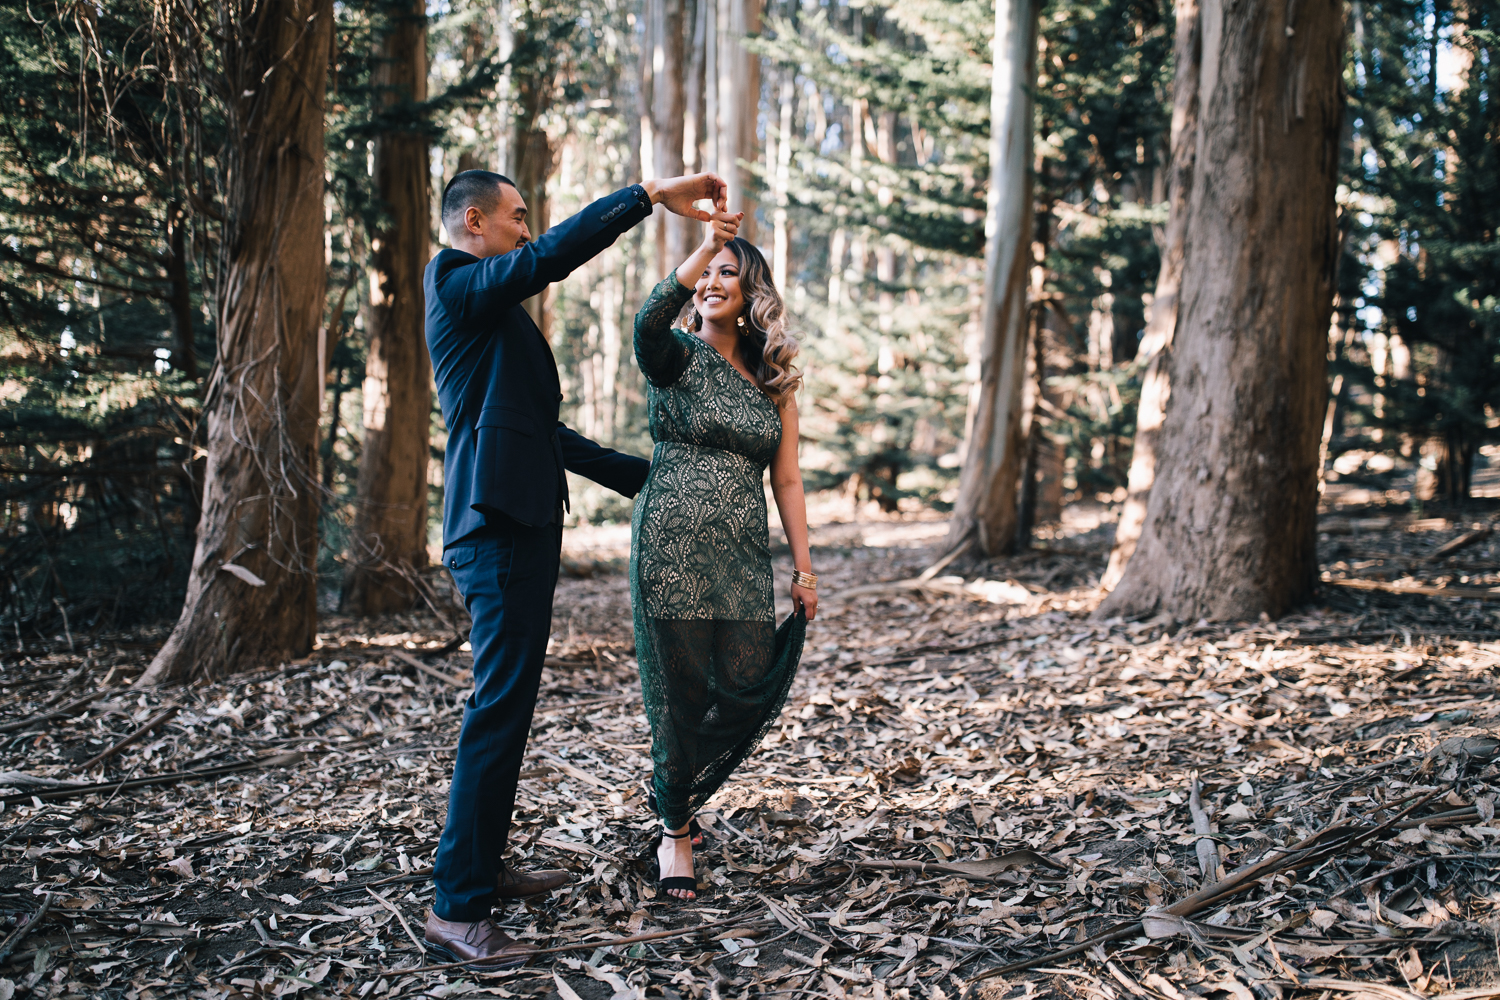 2018_11_ 042018.11.4 Leah + Ed Engagement Session Blog photos Edited For Web 0028.jpg